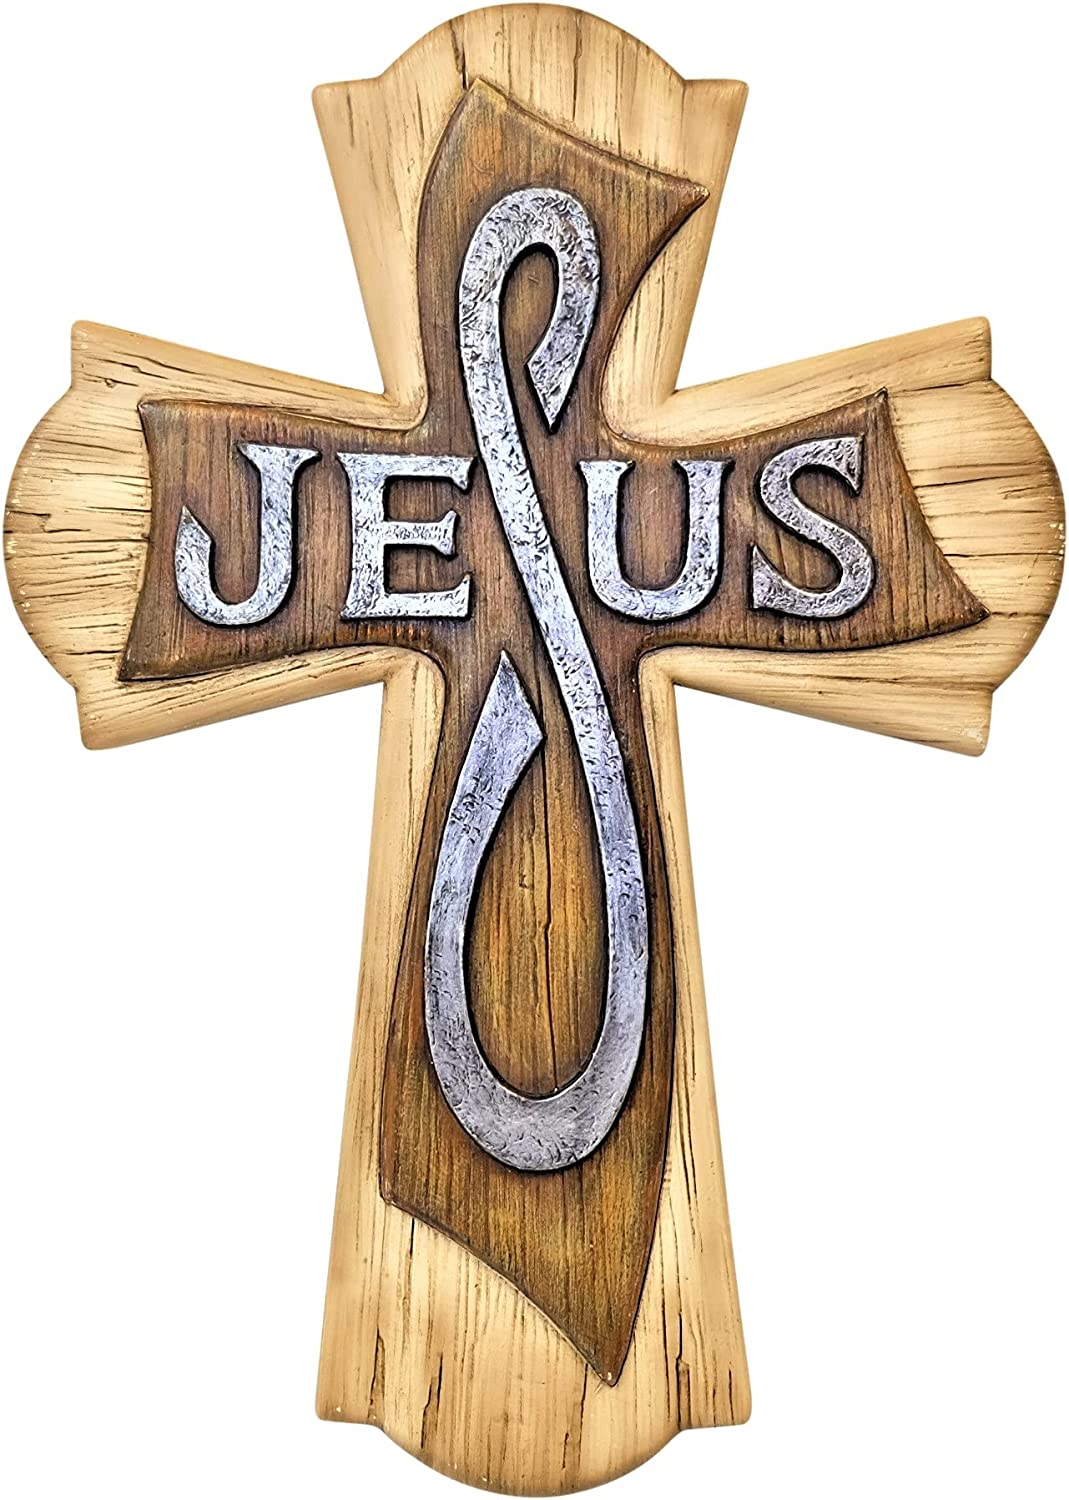 Decorative Faux Wood Look Wall Challenge the lowest price of Japan ☆ Cross Large-scale sale Sc Jesus Art Spiritual